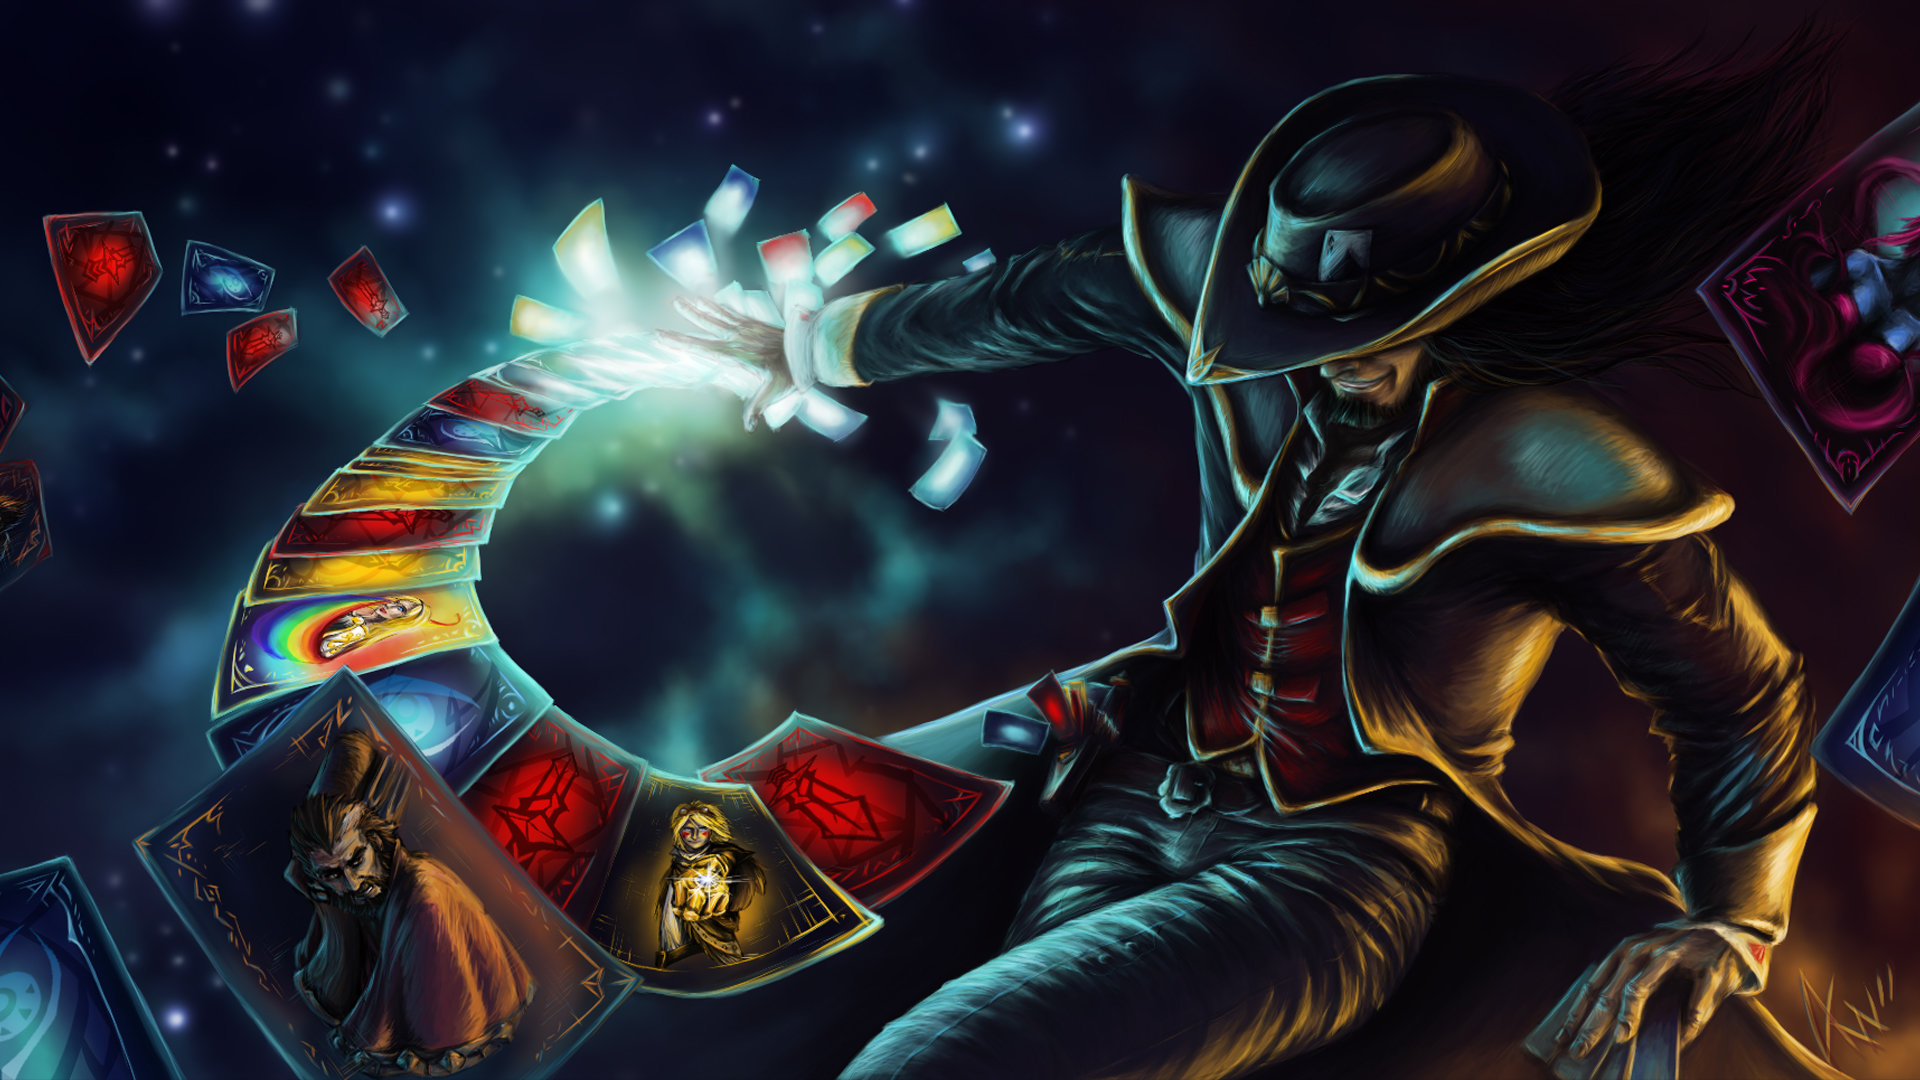 Twisted fate league of legends wallpapers hd for desktop backgrounds free twisted fate league of legends high quality background id170998 for 1080p voltagebd Images